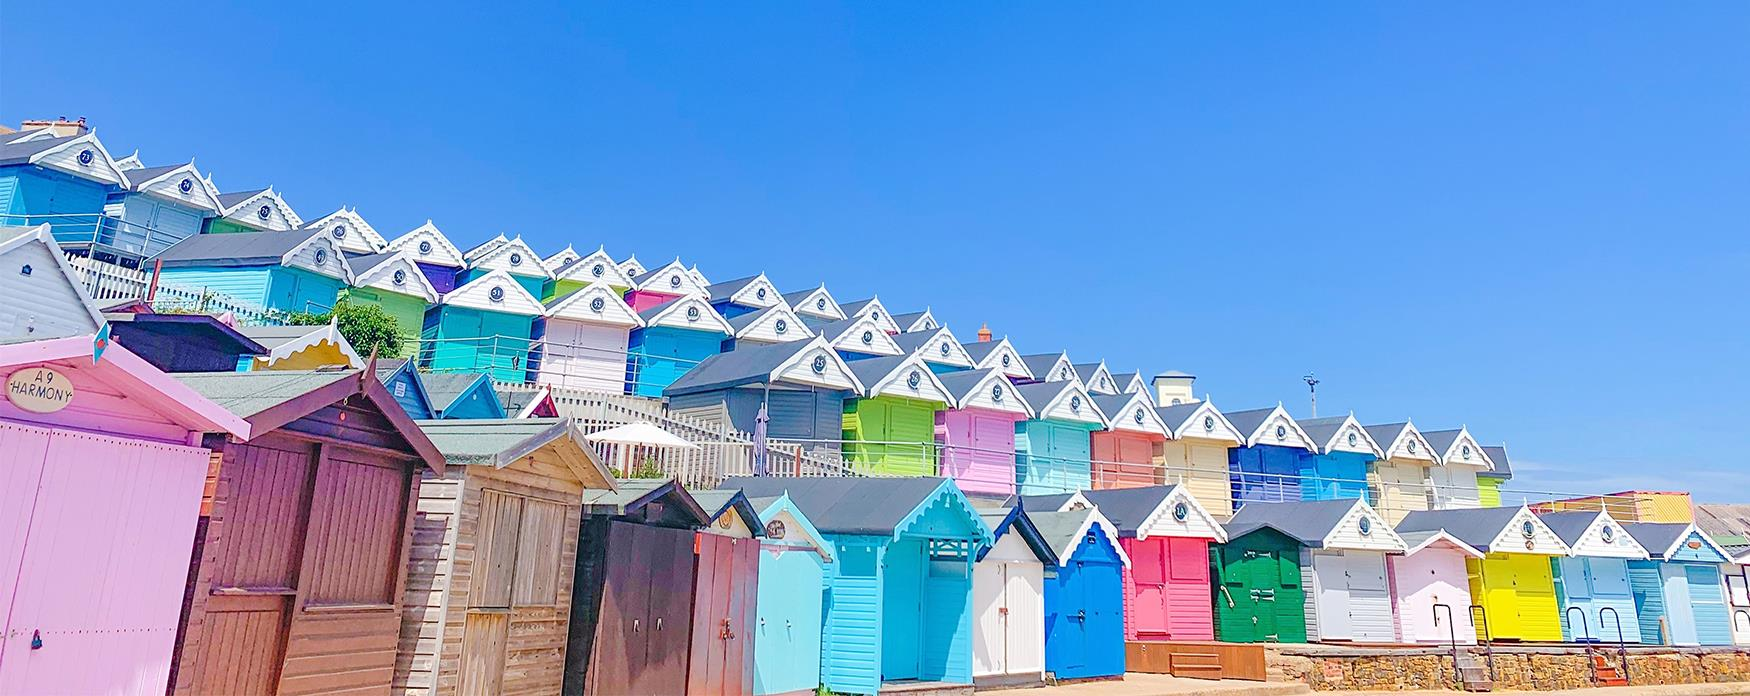 Rows of colourful beach huts on a summers day